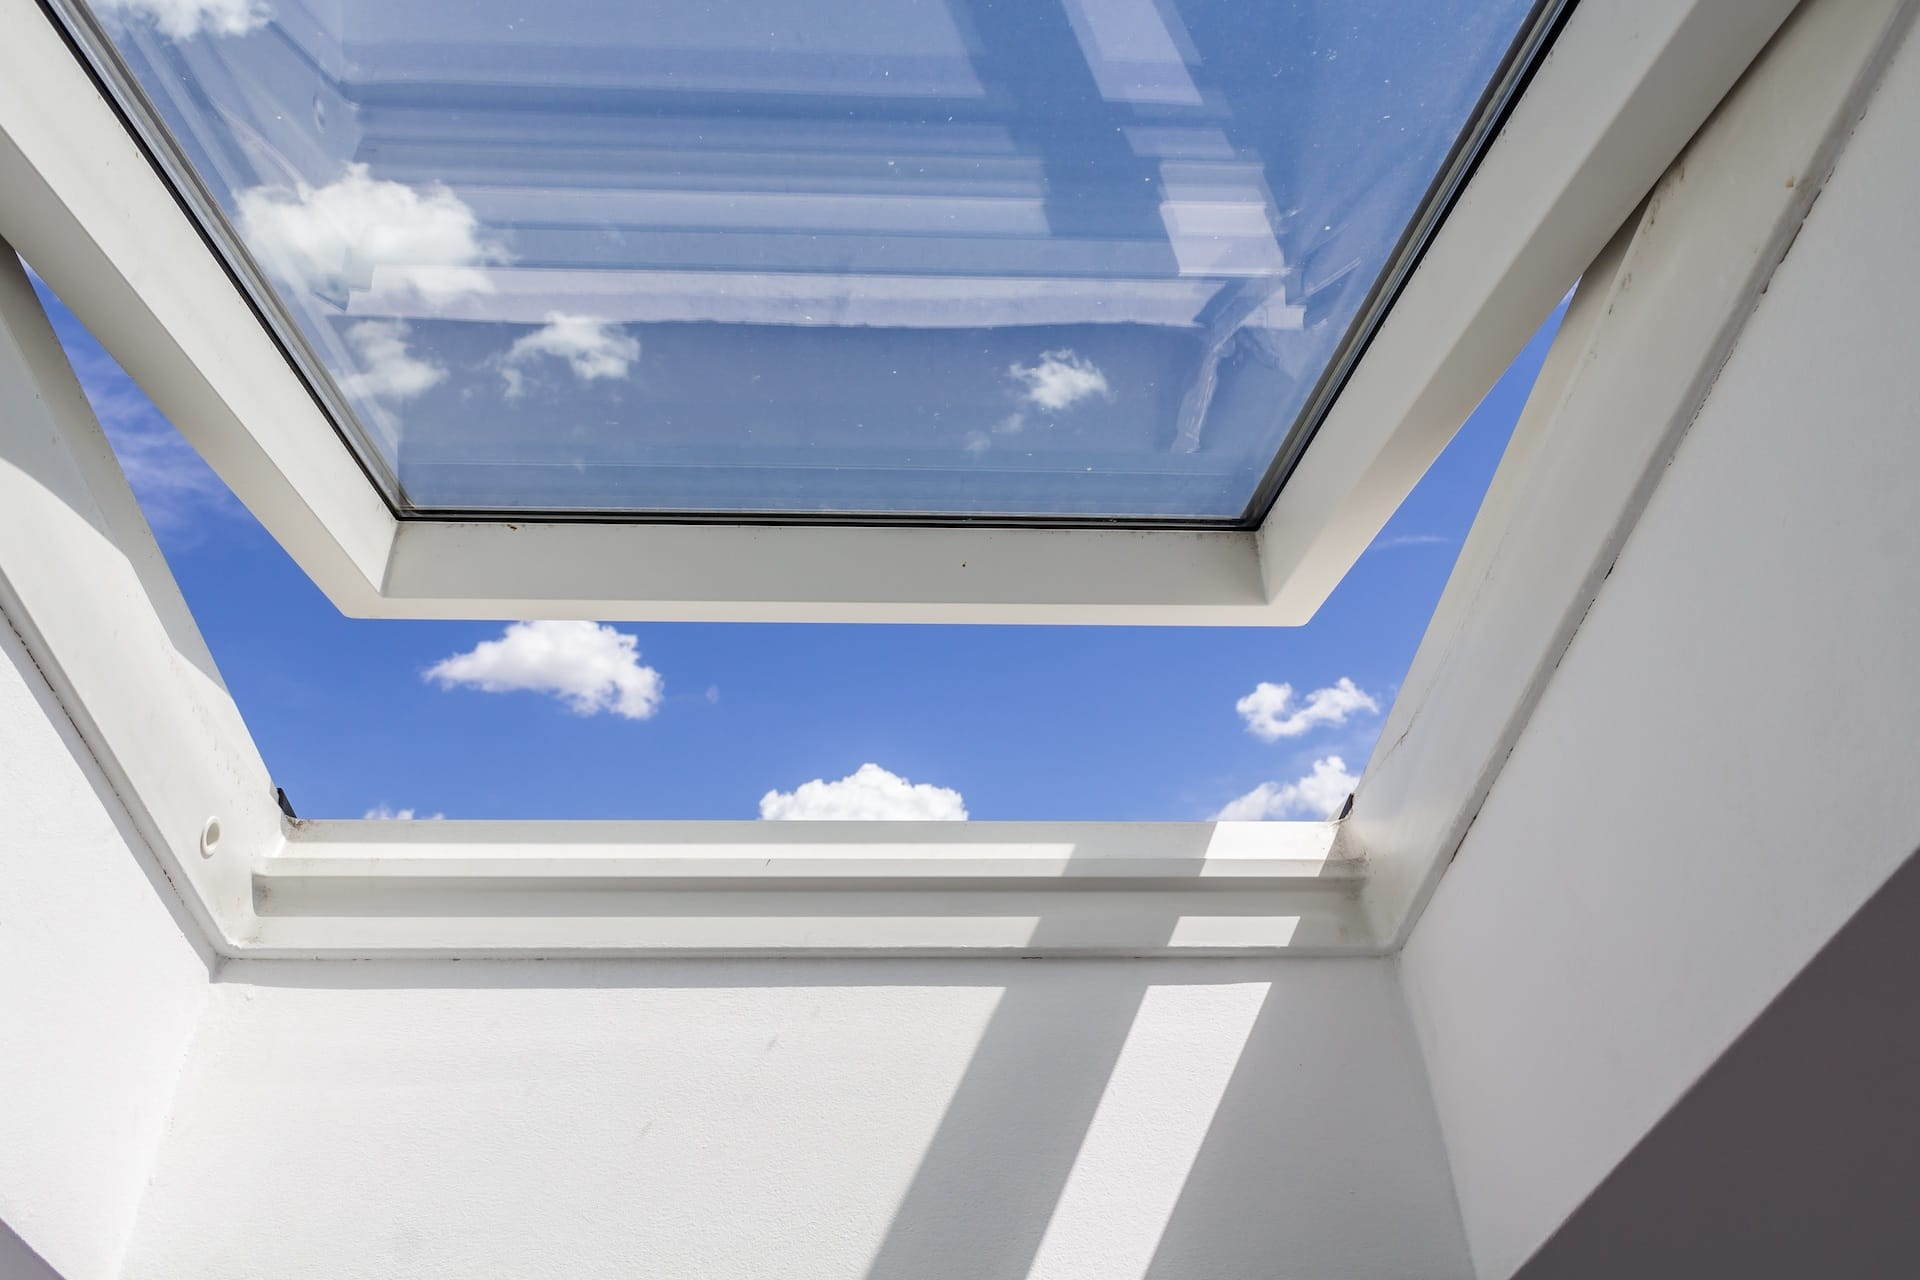 planning permission for replacement windows